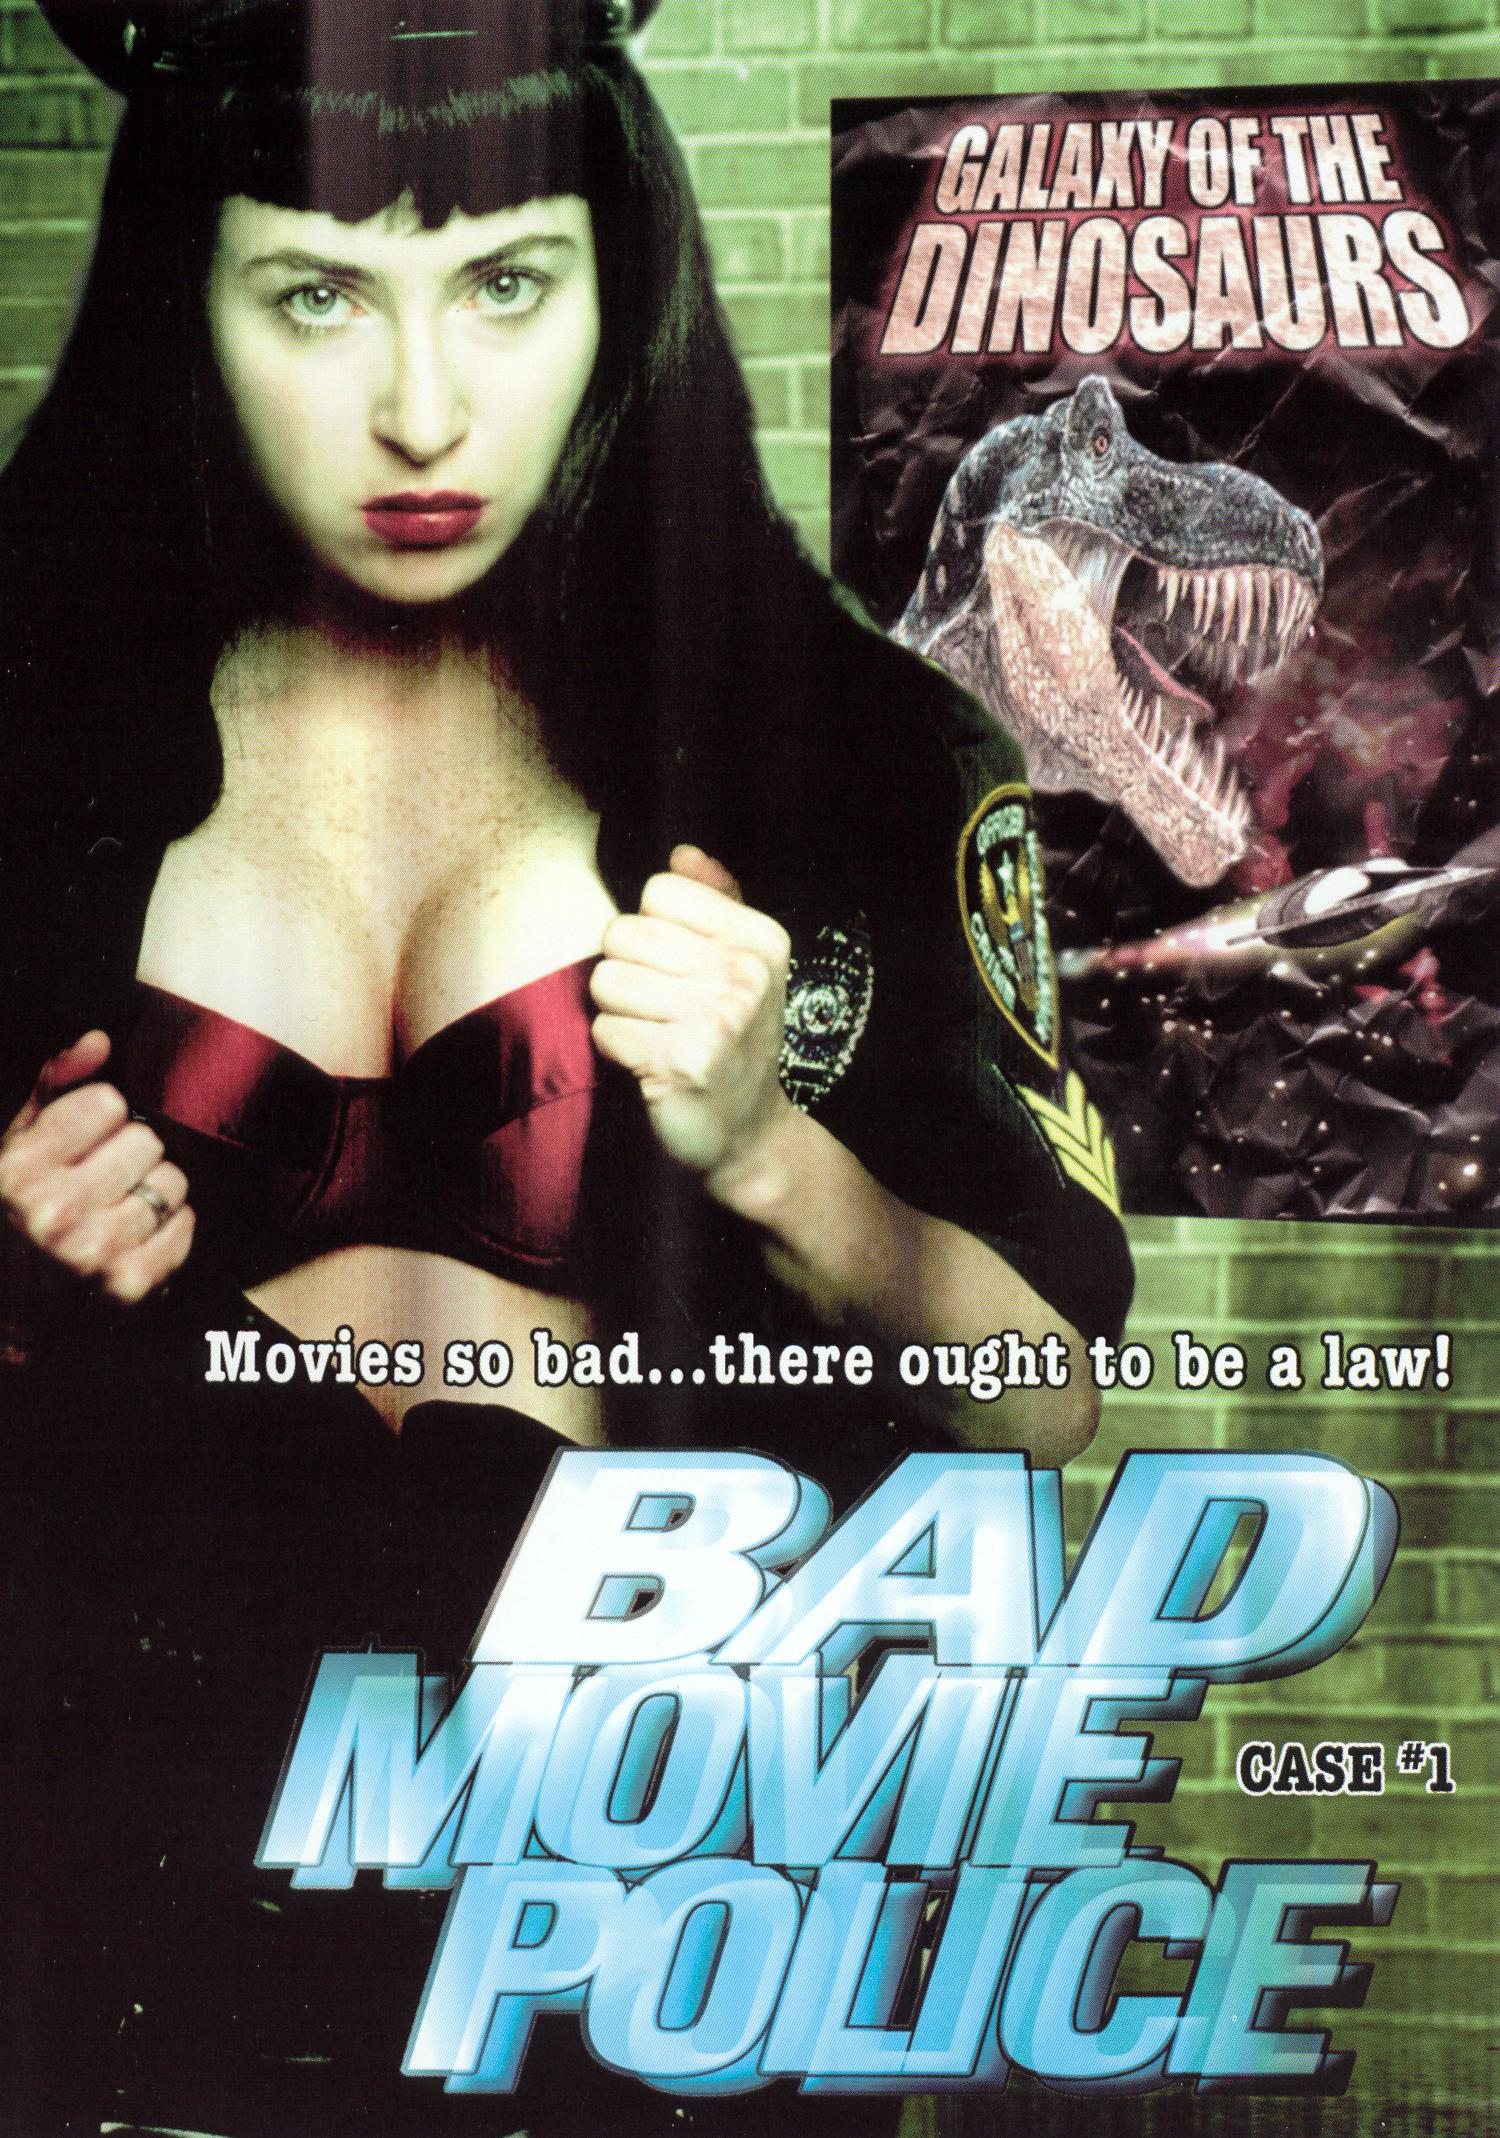 Bad Movie Police Case 1: Galaxy of the Dinosaurs